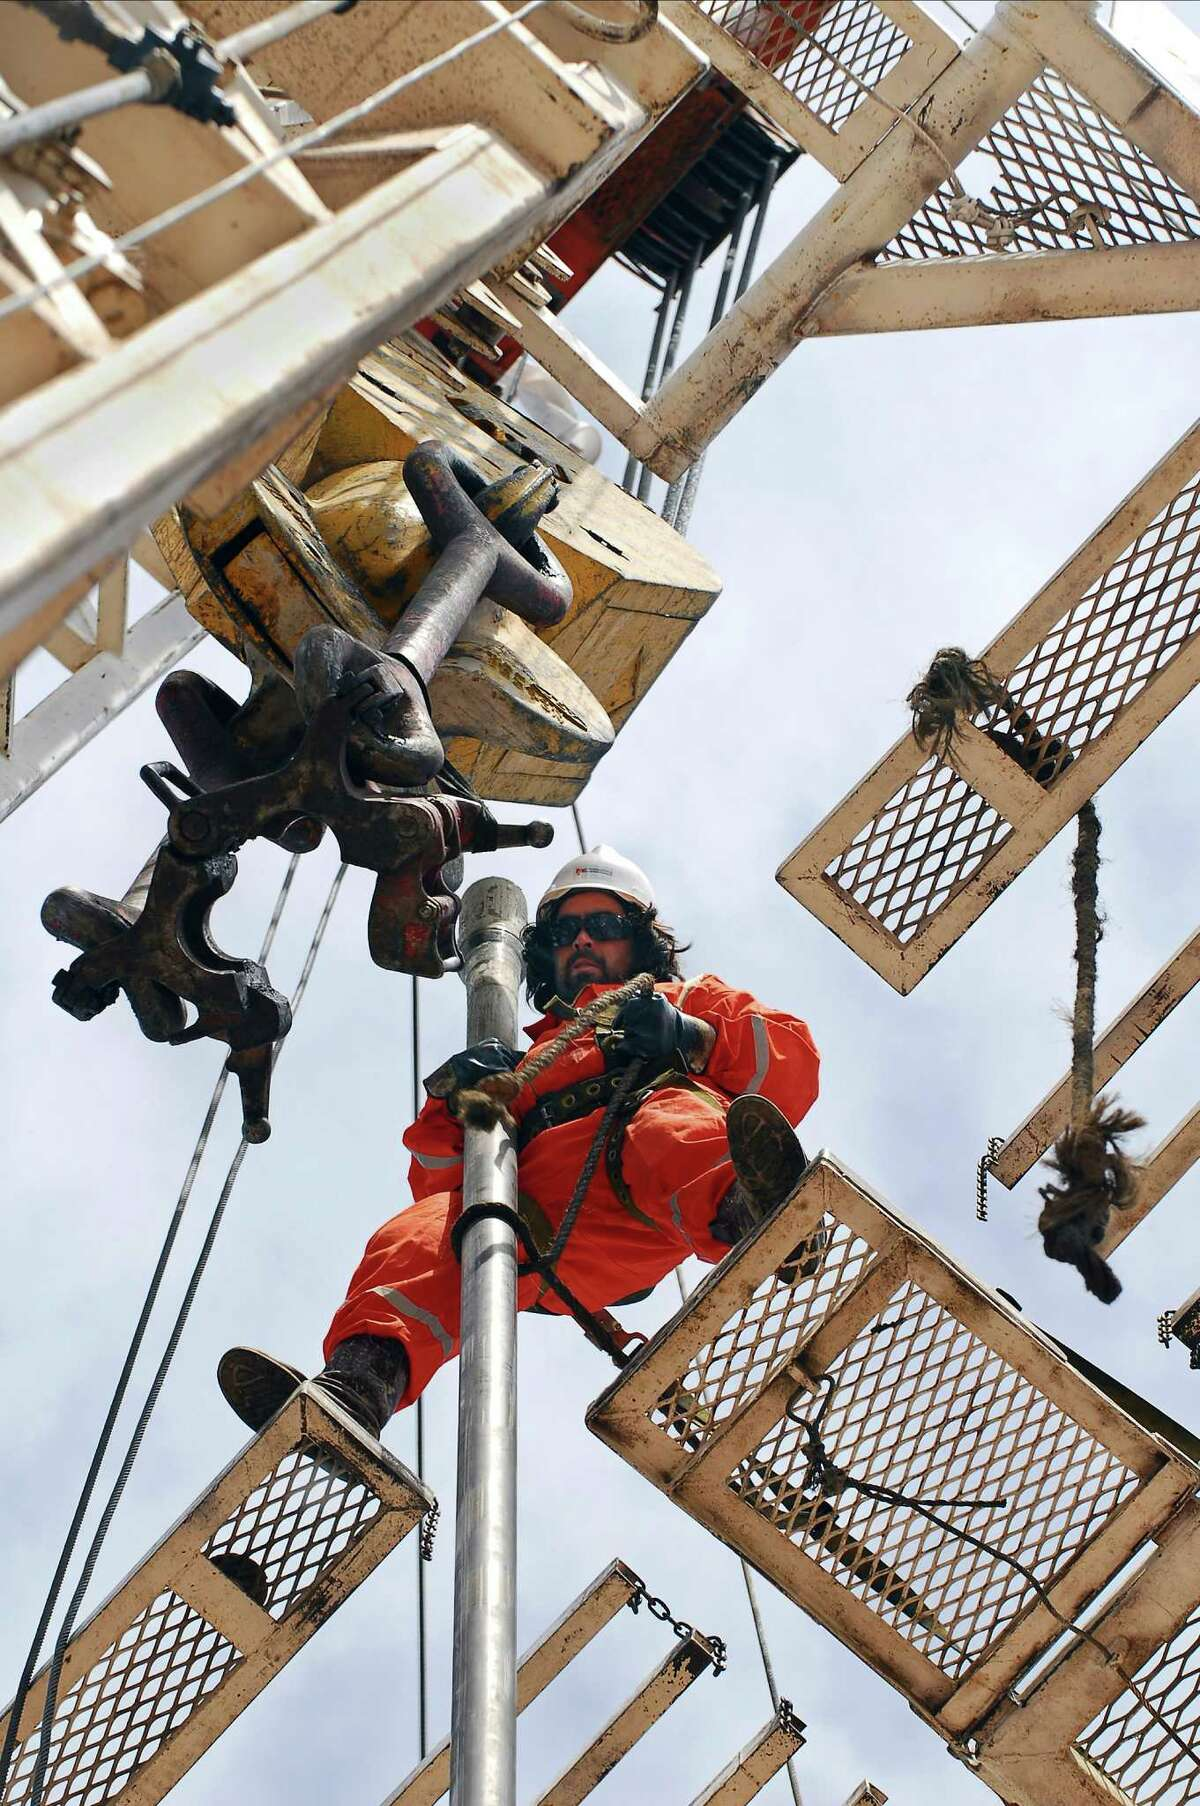 """An oil worker adjusts a drill in the province of Neuquén, Argentina. """"The Neuquén Basin has infrastructure, has rail, has roads, has pipelines,"""" says Melissa Stark."""